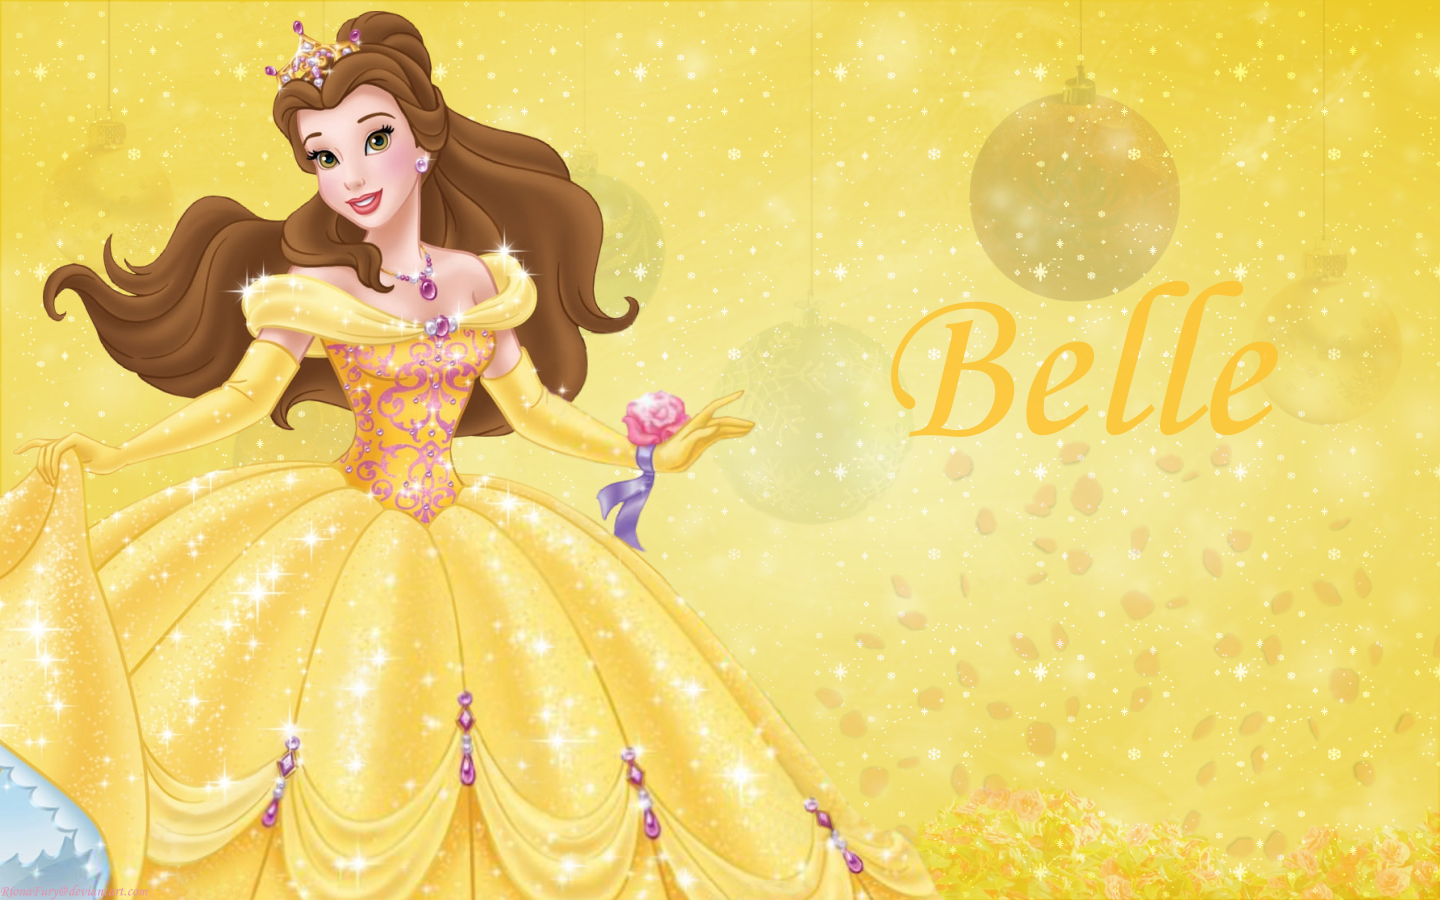 Belle beauty and the beast 24726596 1440 900